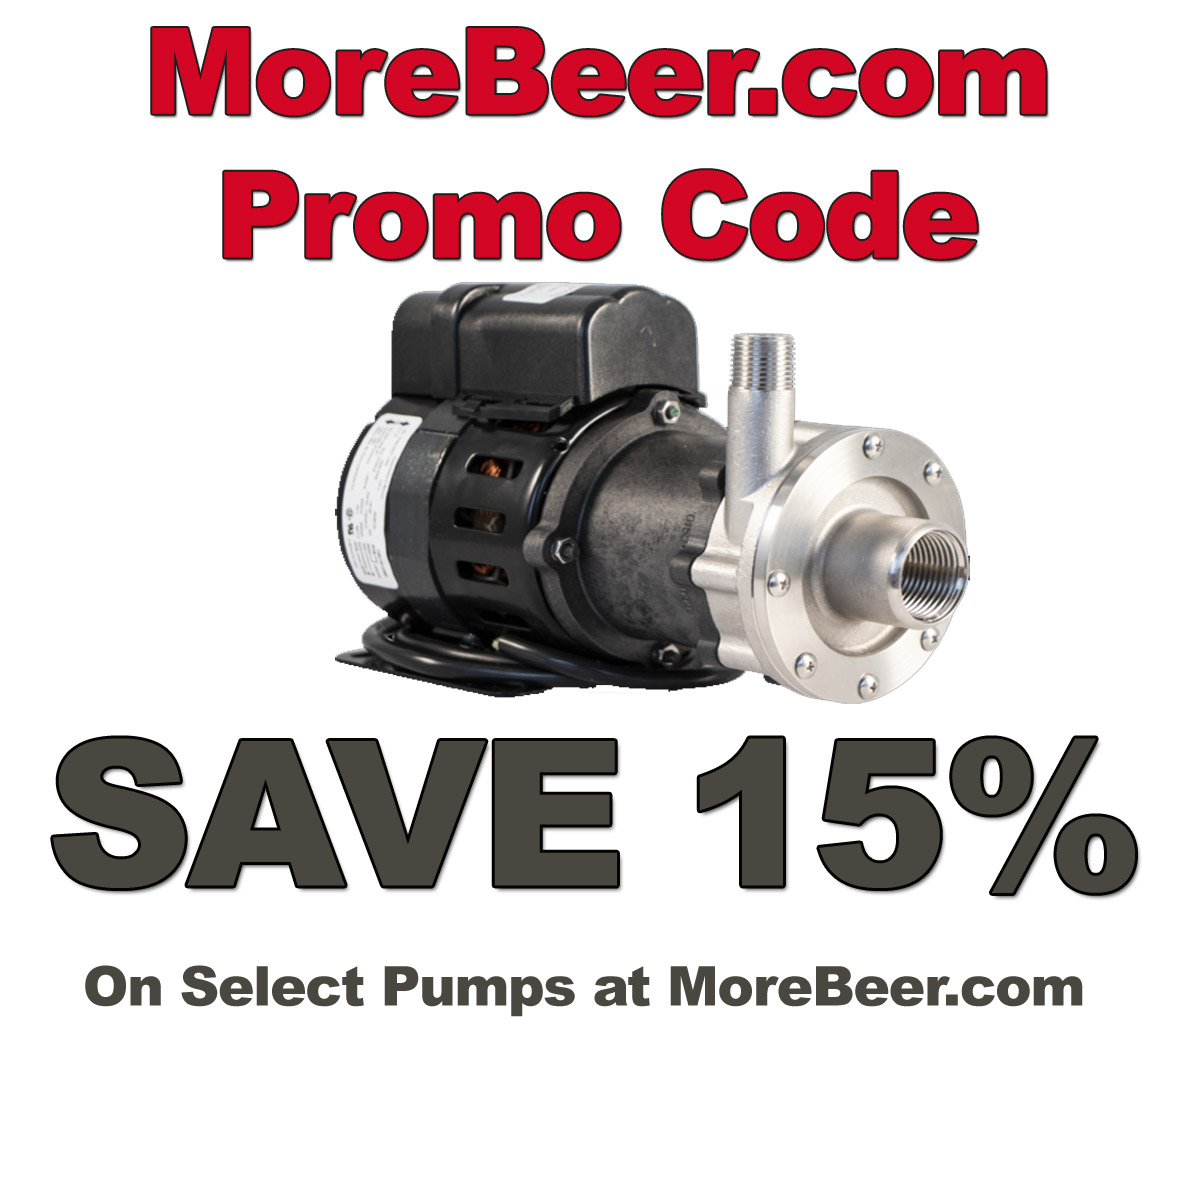 MoreBeer Save 15% On Home Brewing Pumps with this MoreBeer.com Promo Code Coupon Code